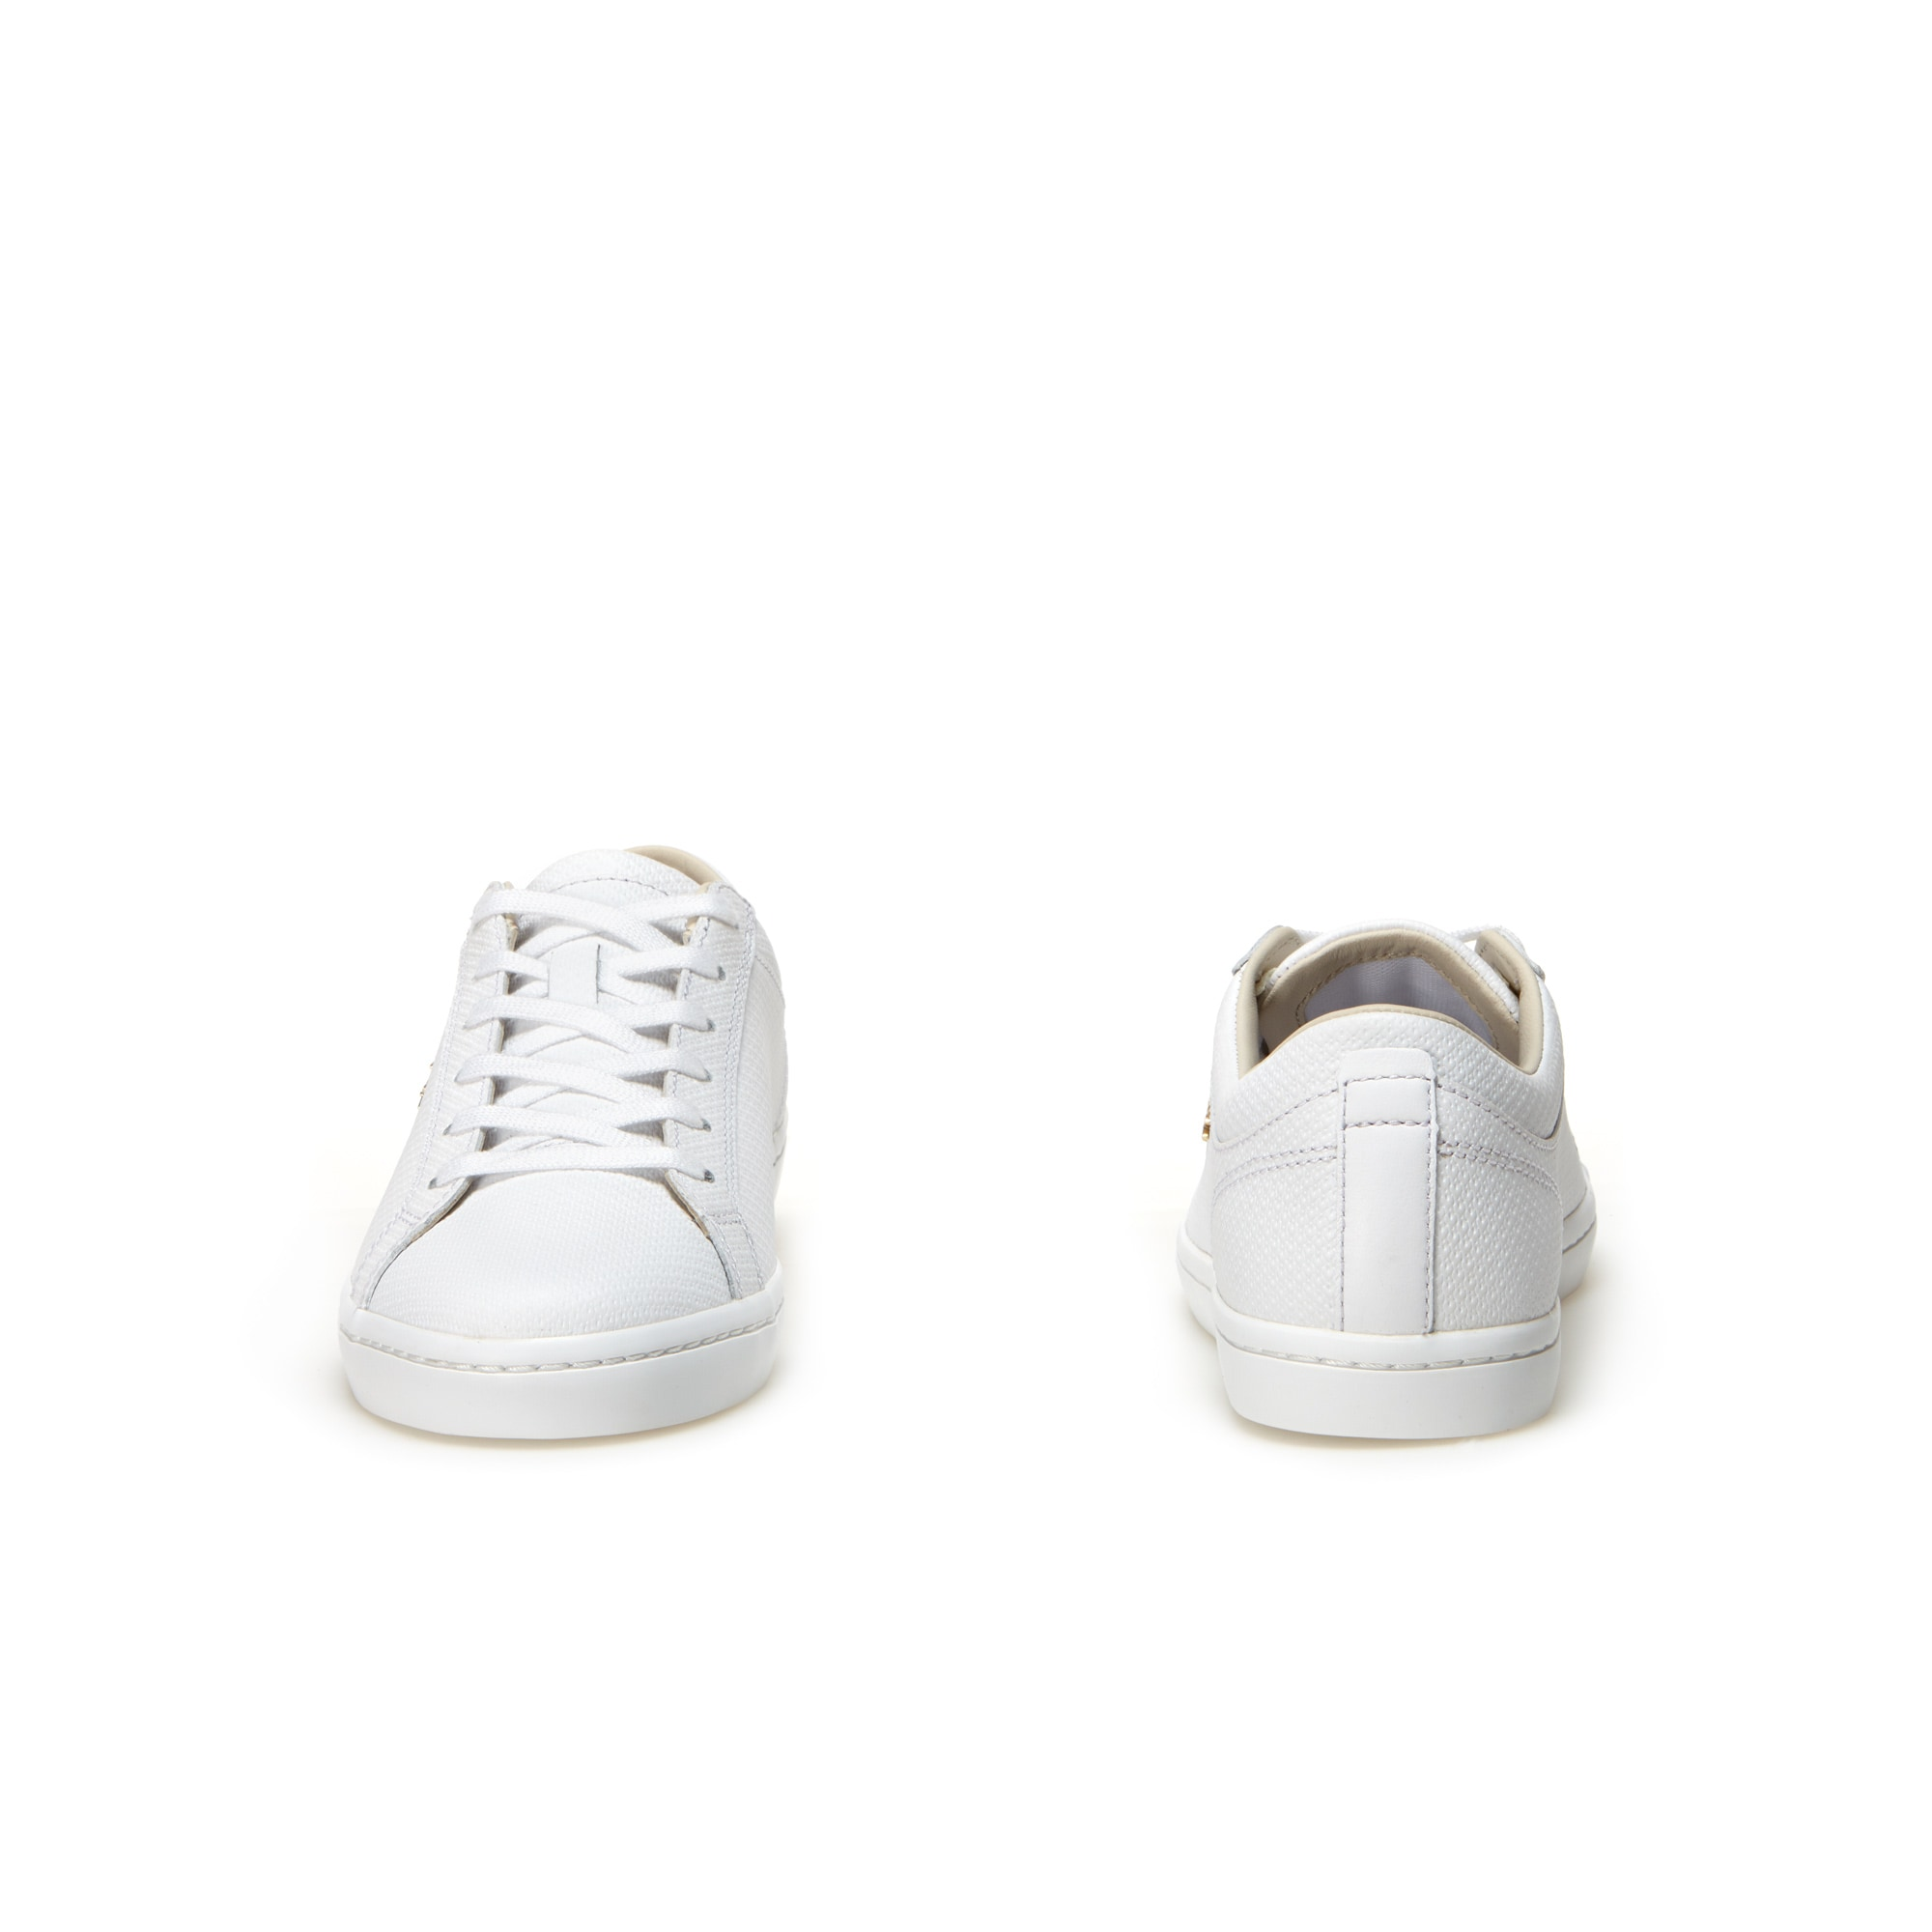 073e7630e795 Women s Straightset Leather trainers With Golden Croc